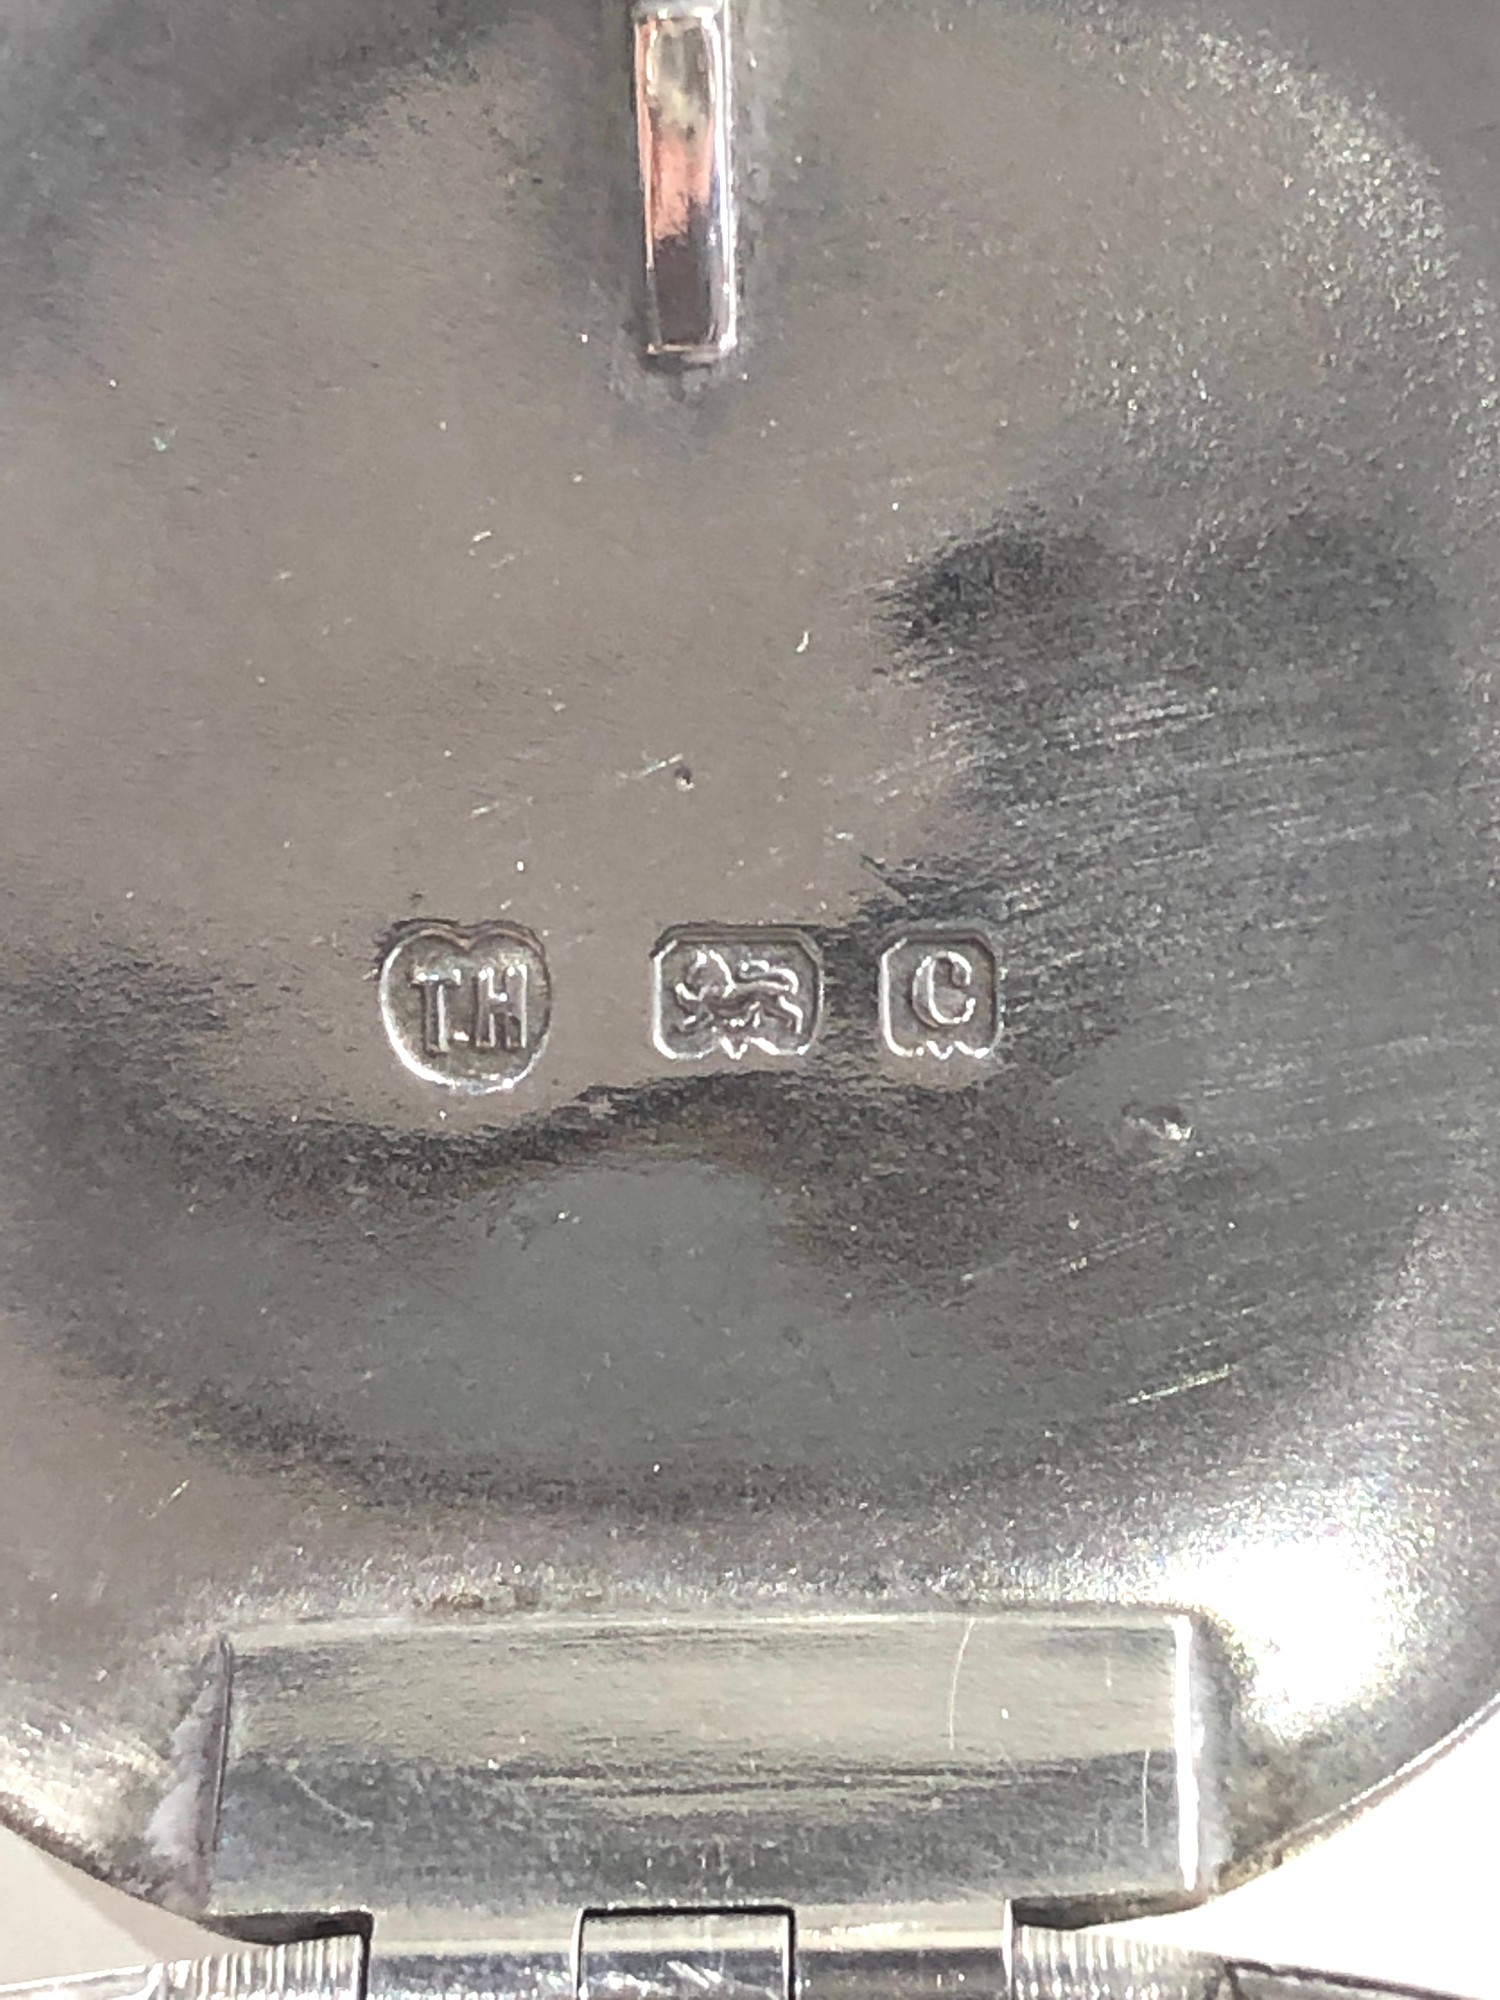 Antique silver tobacco box Birmingham silver hallmarks age related dents please see images for - Image 2 of 7